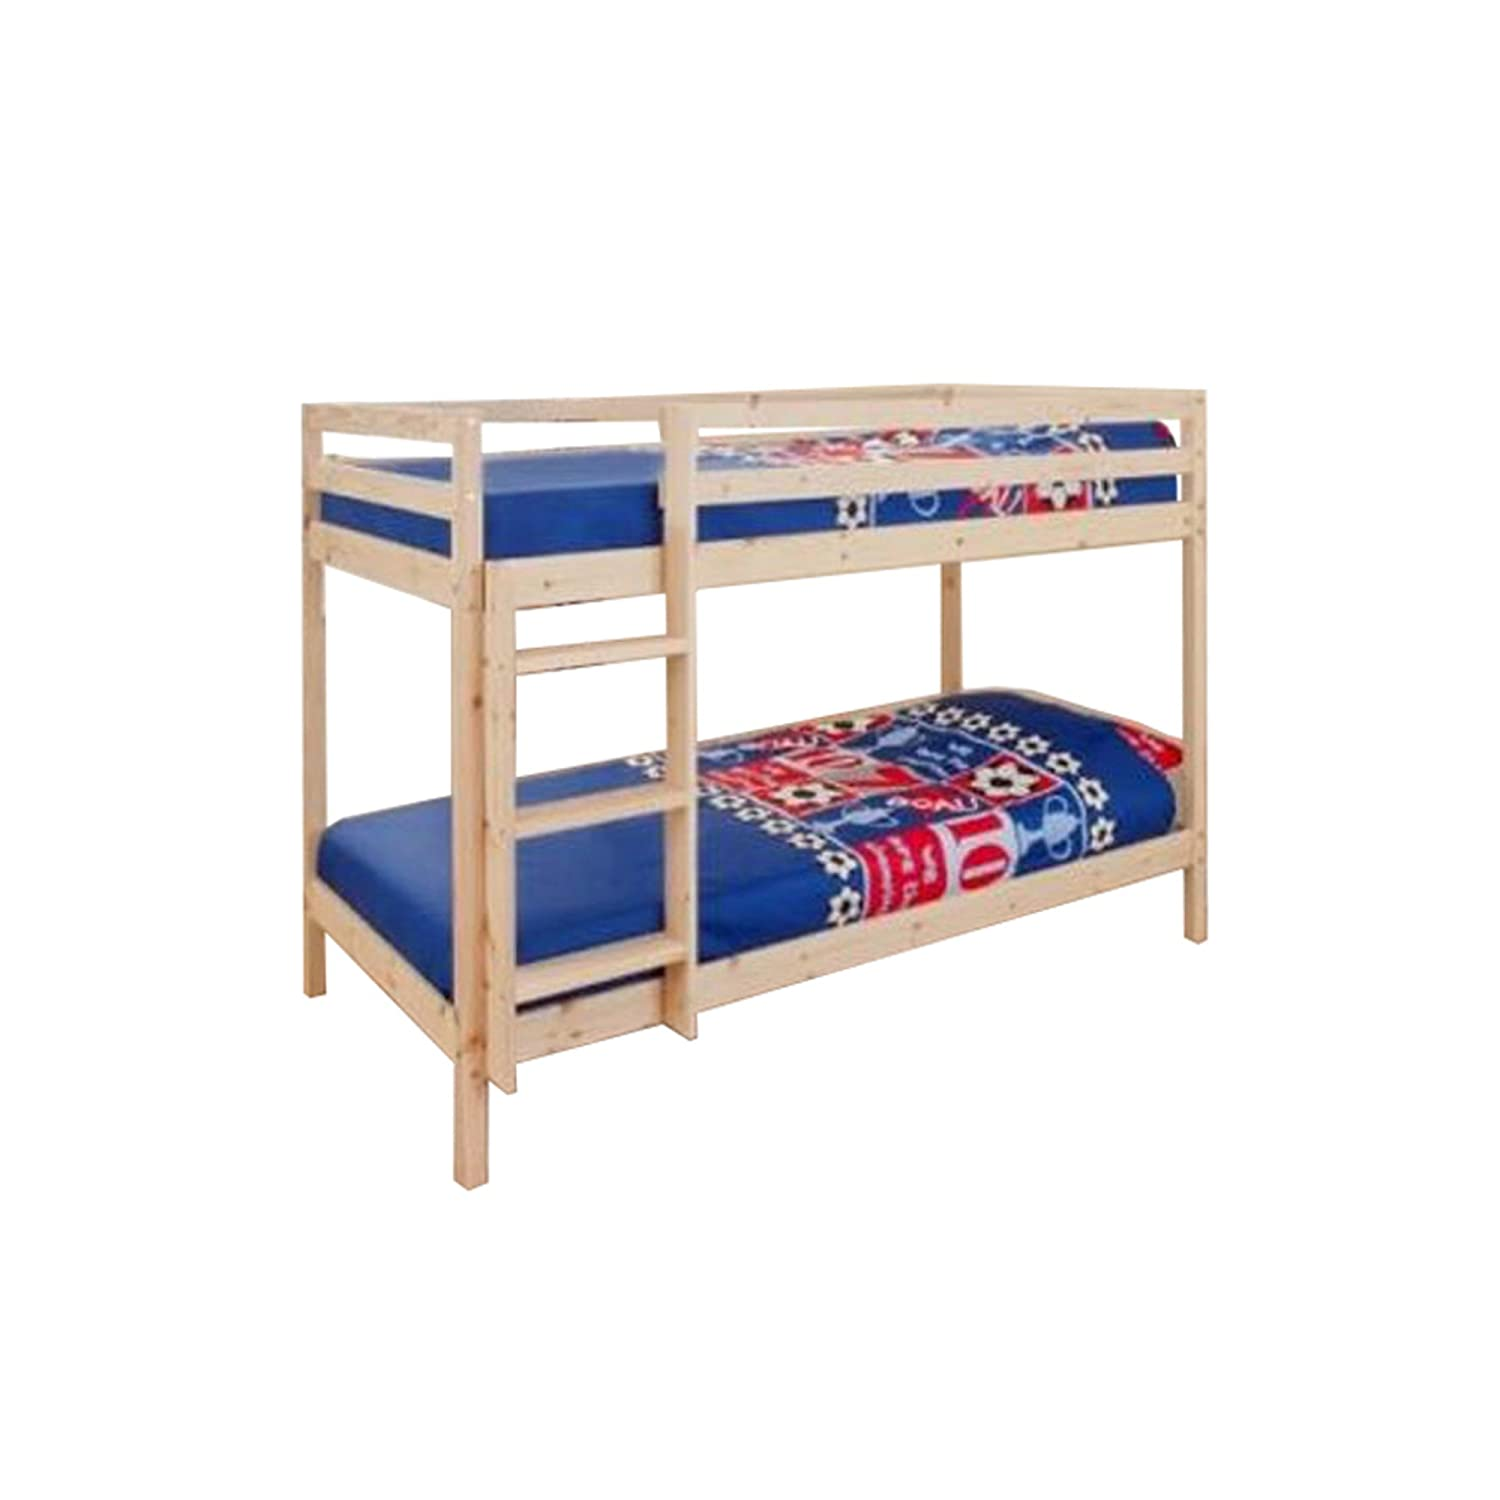 size cheap included beds bed mattresses mattress bunk set twin info storage sdautomuseum loft with argos top